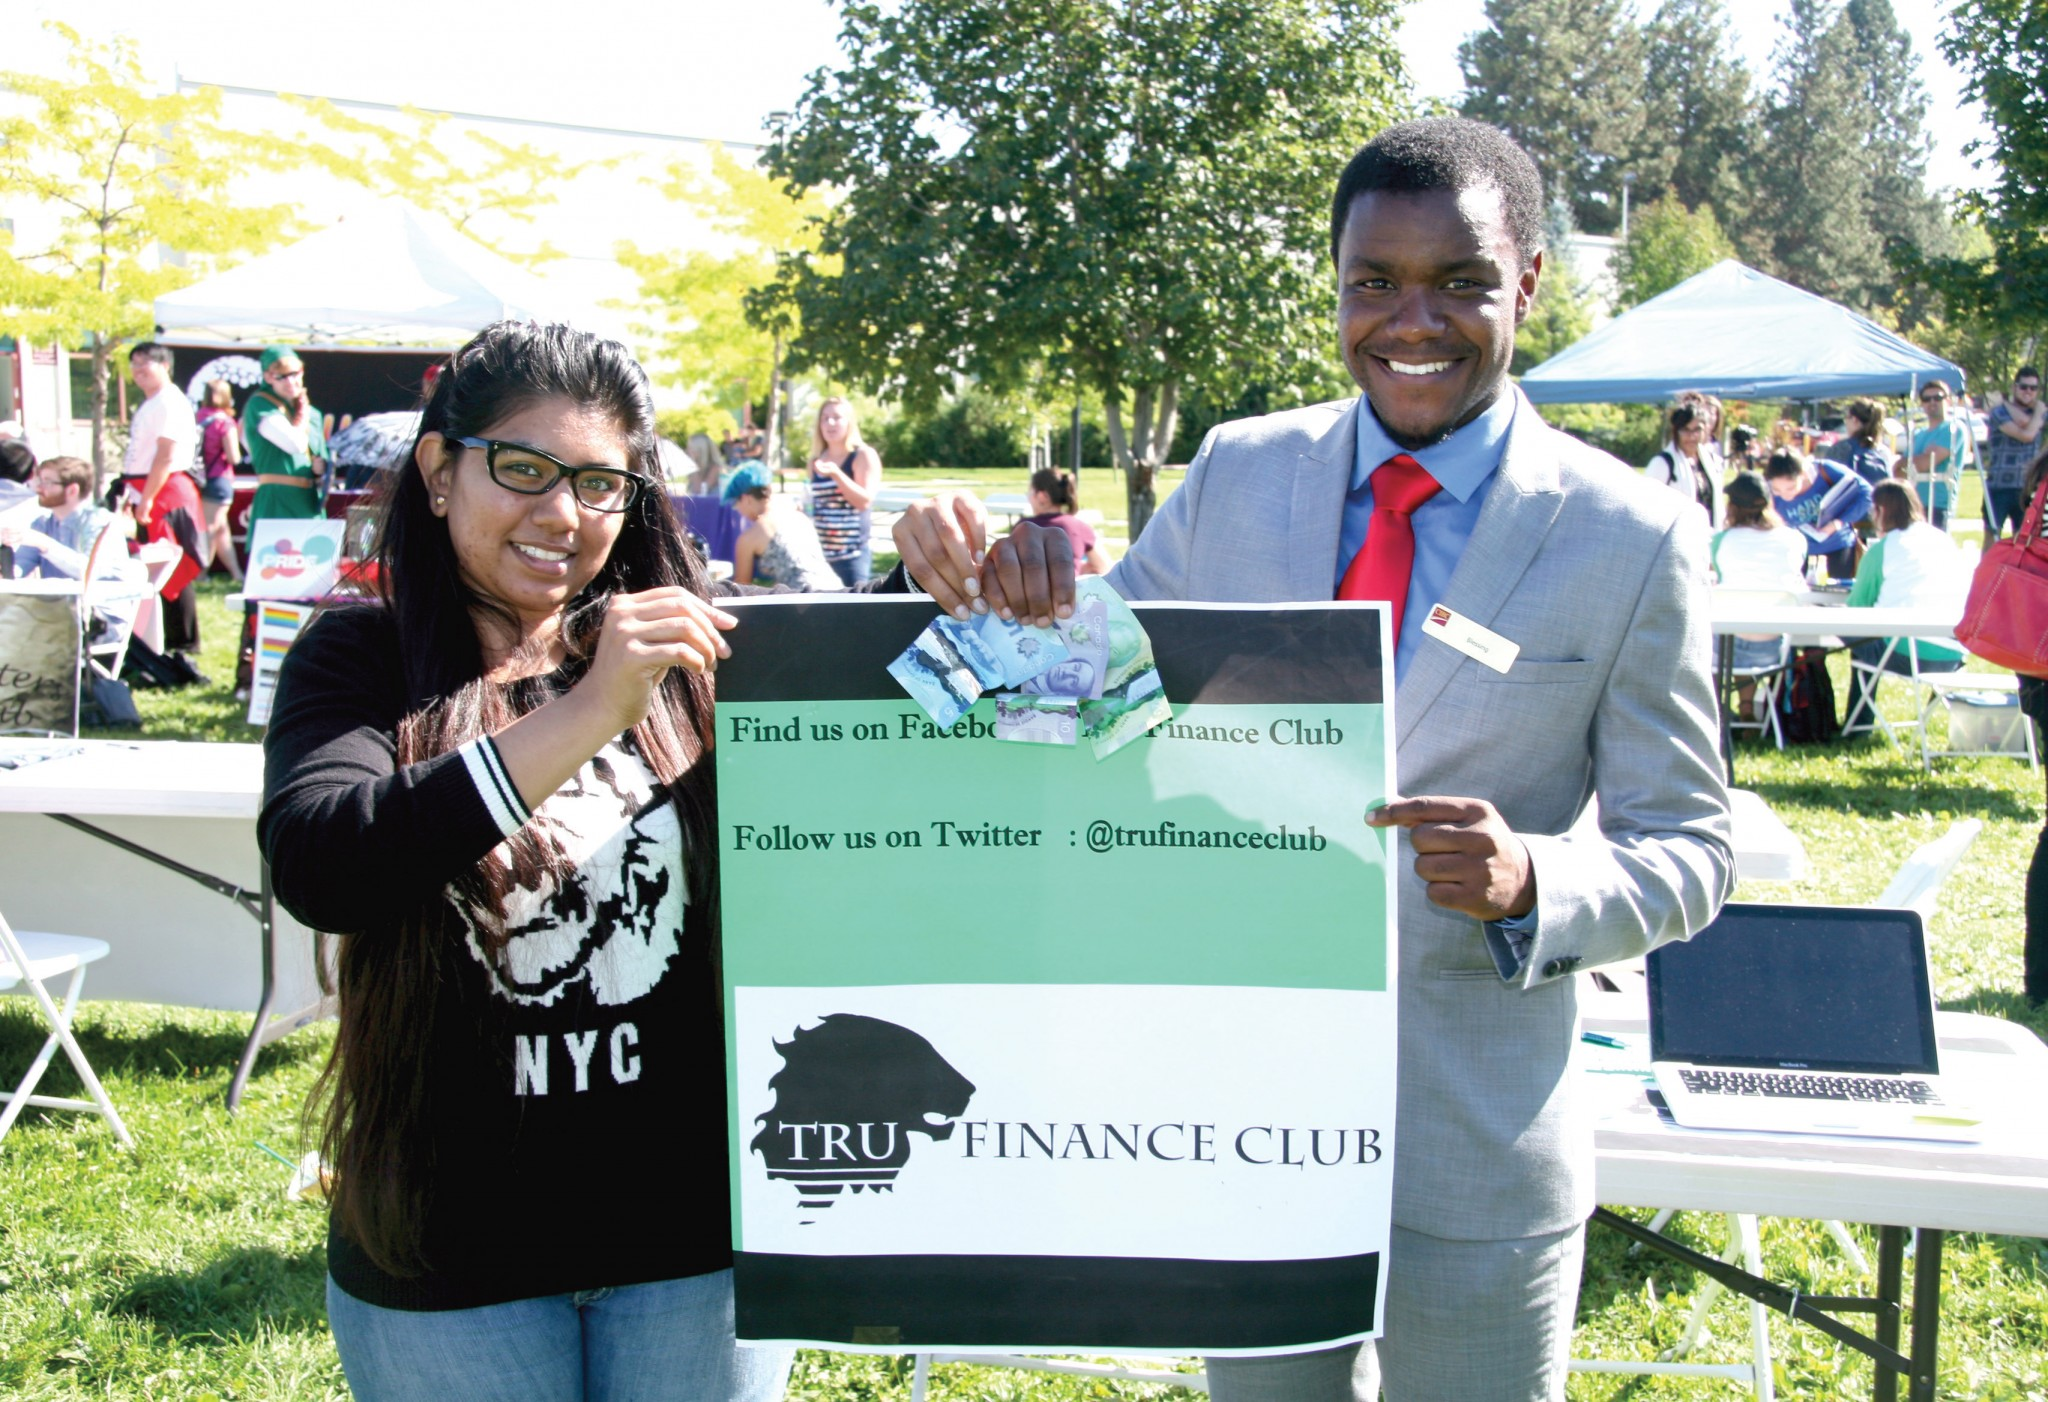 Clubs Day is a staple among TRU campus event-goers. It's filled with ways